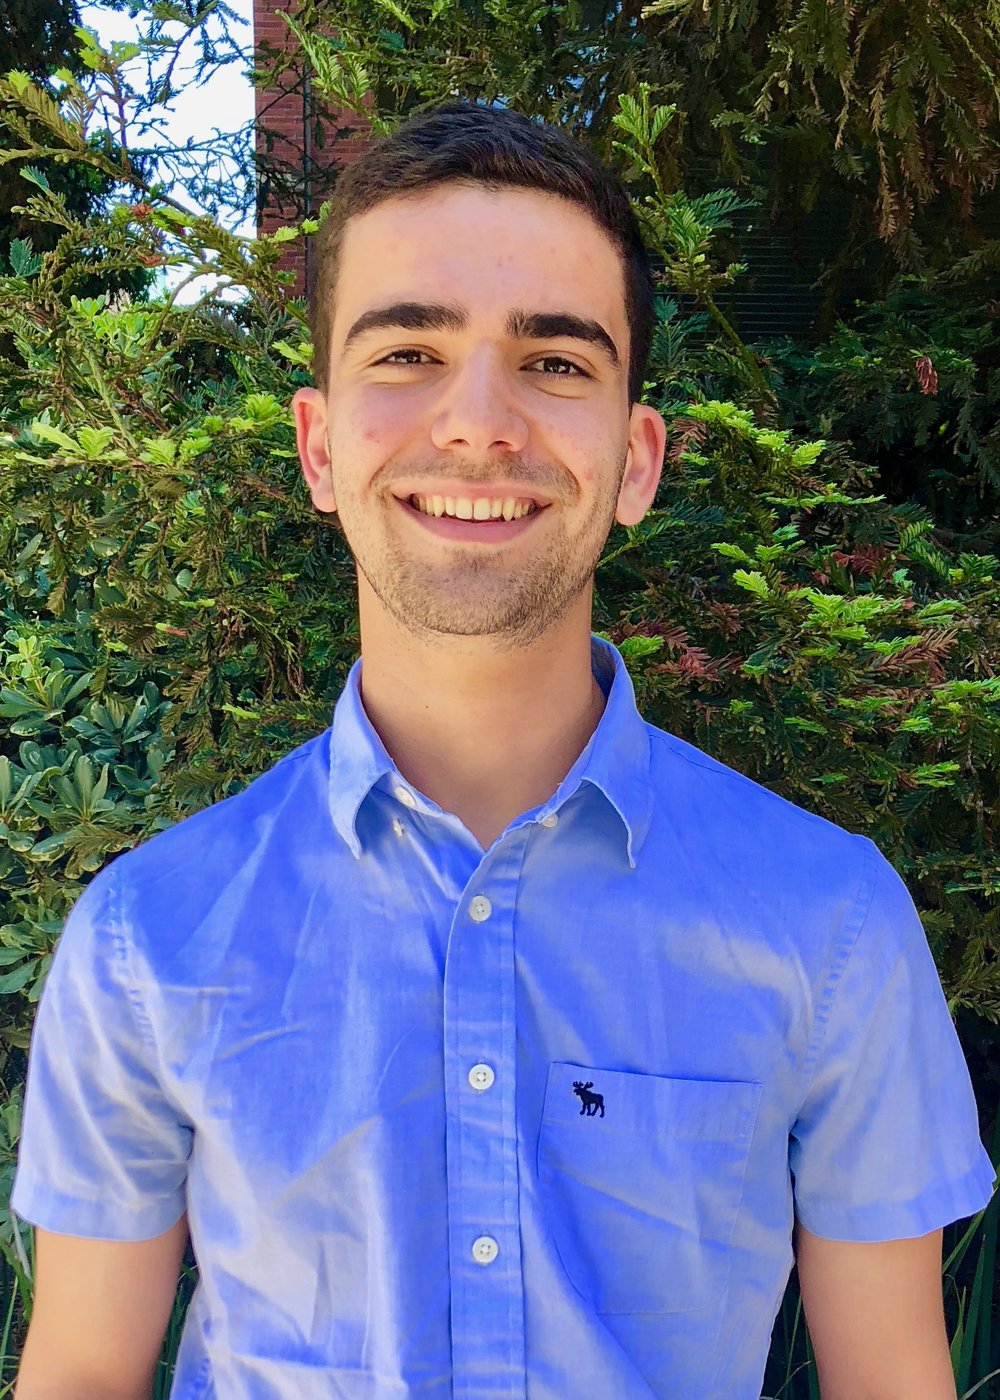 Jacob Dahan is a second-year undergraduate student studying Sustainable Development, Economics, and Business Management at Columbia University.  Fun fact: He has a website dedicated to narwhals.